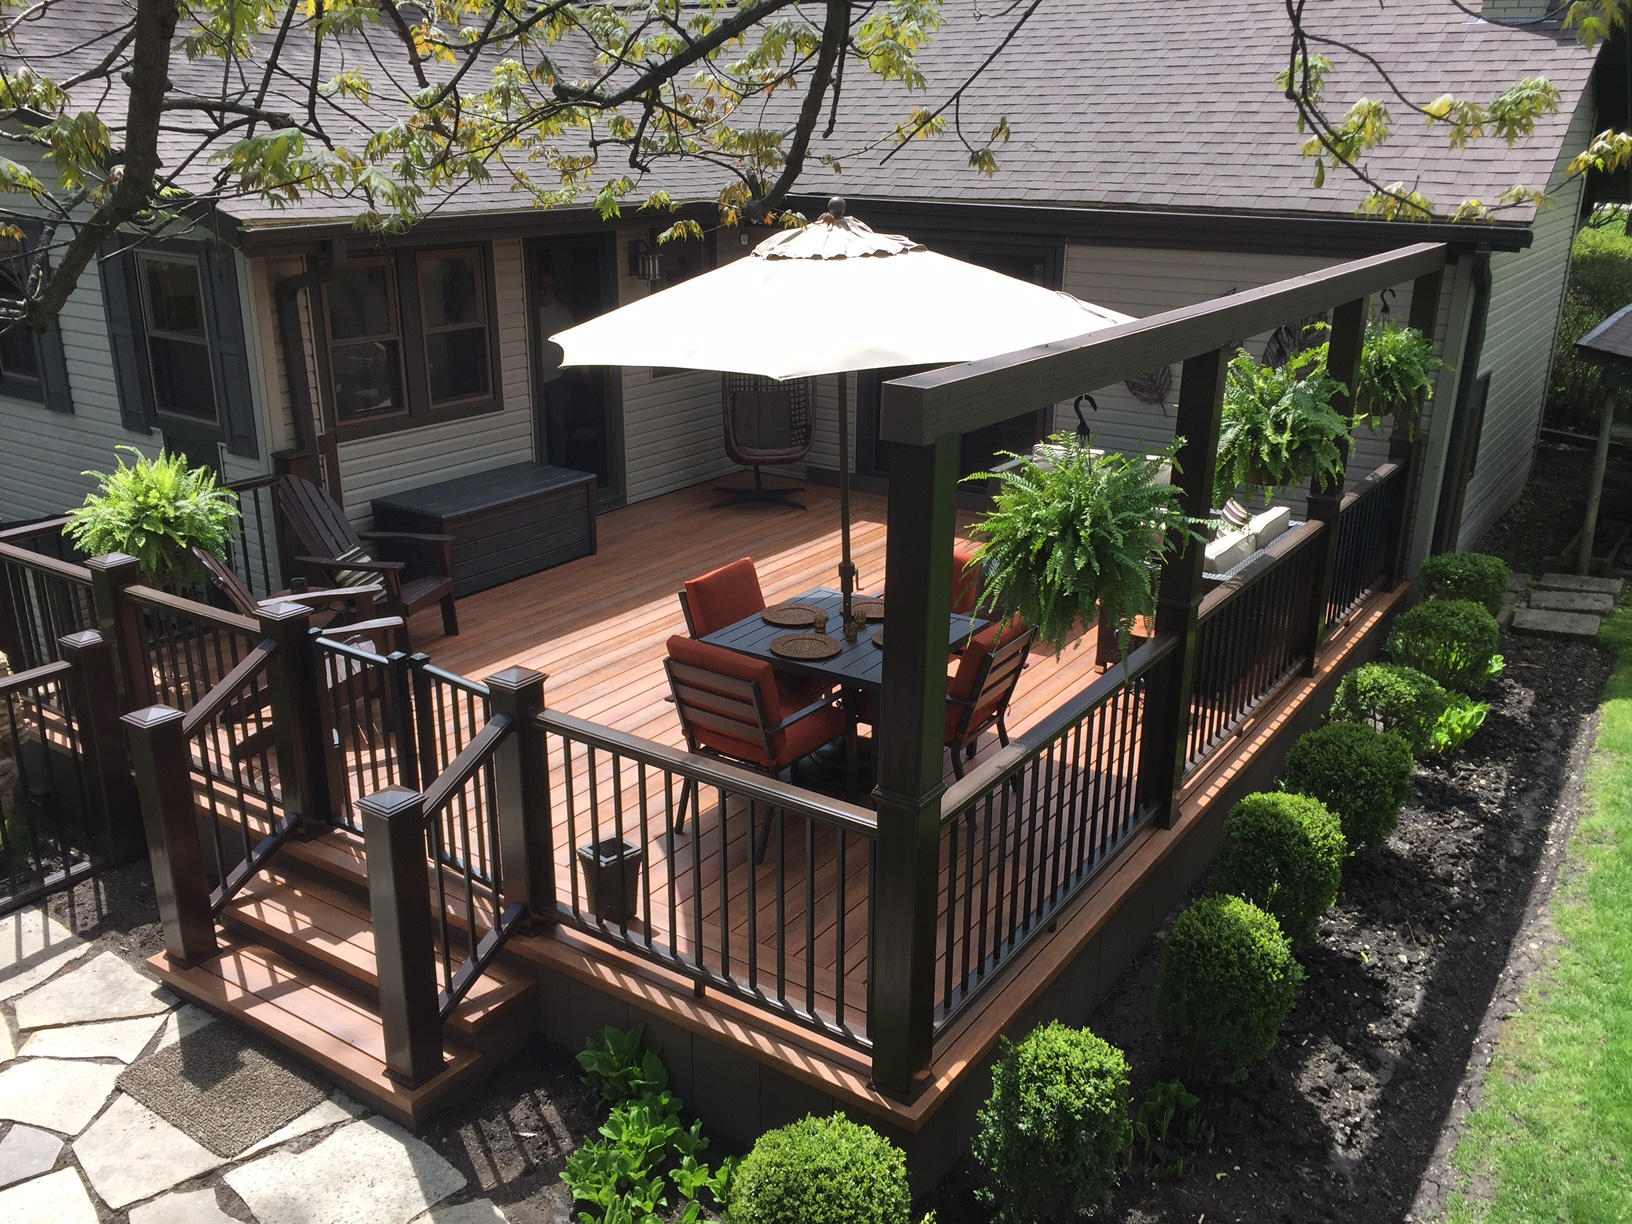 PROJECT SPOTLIGHT: DECK WITH STONE WALKWAY